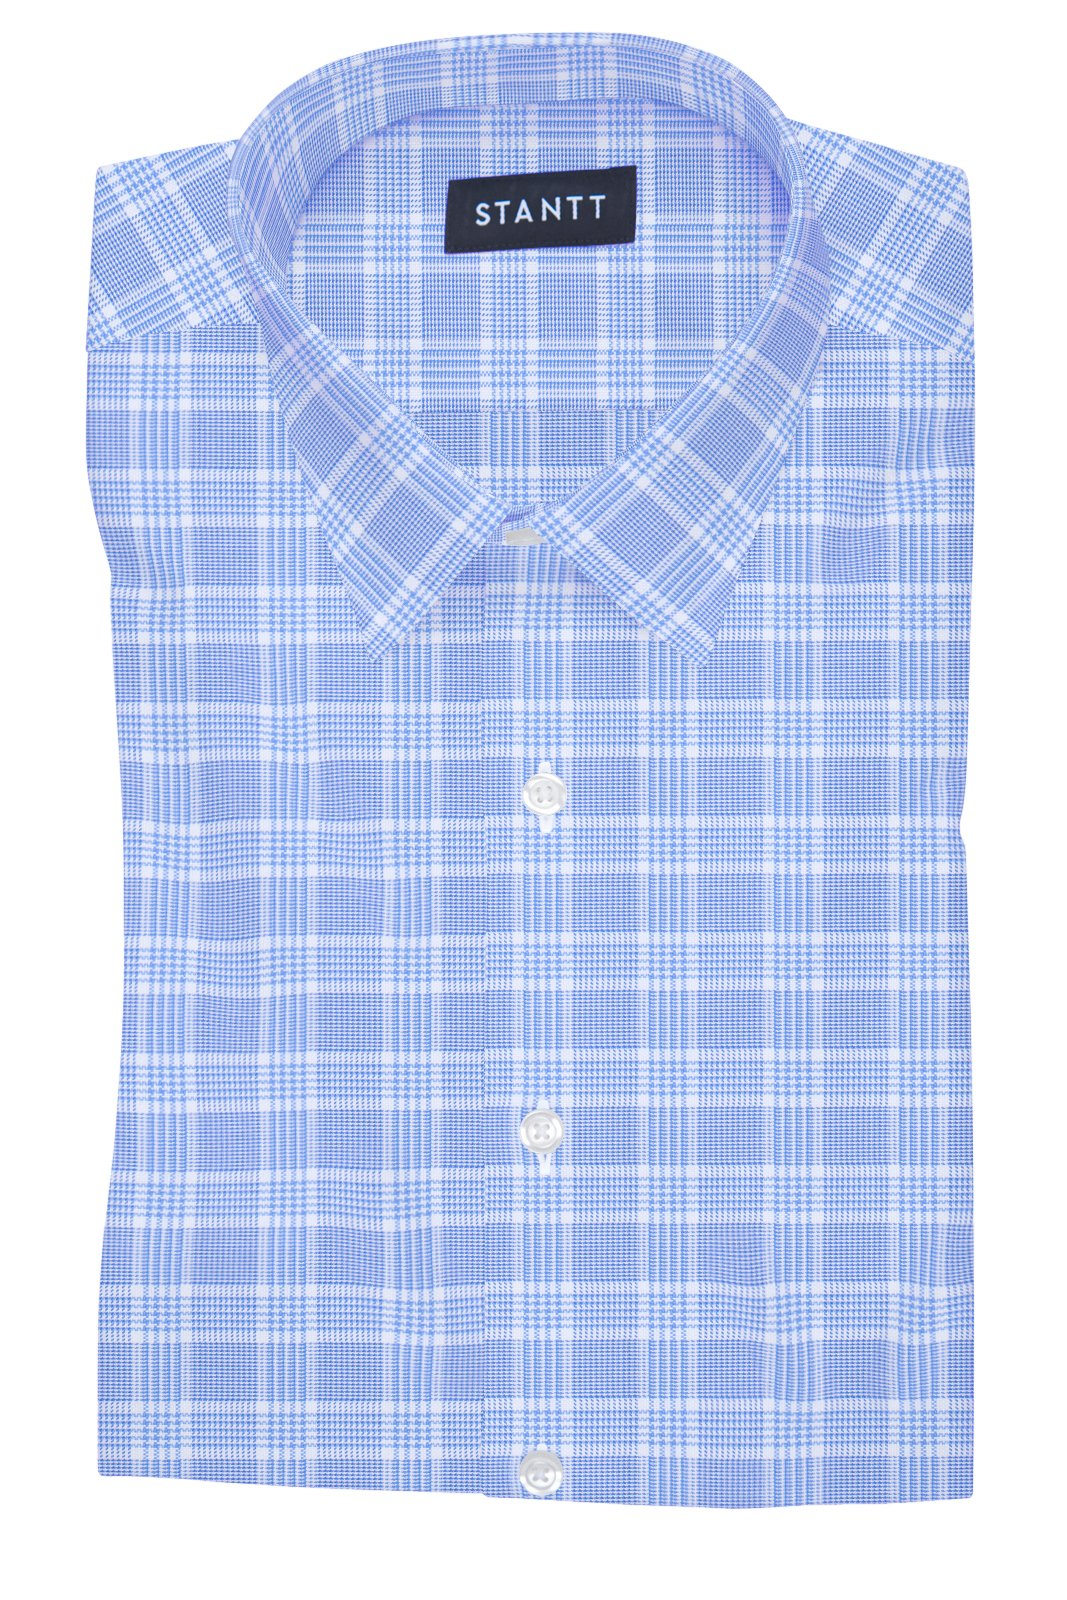 British Blue Prince of Wales Check: Semi-Spread Collar, Barrel Cuff